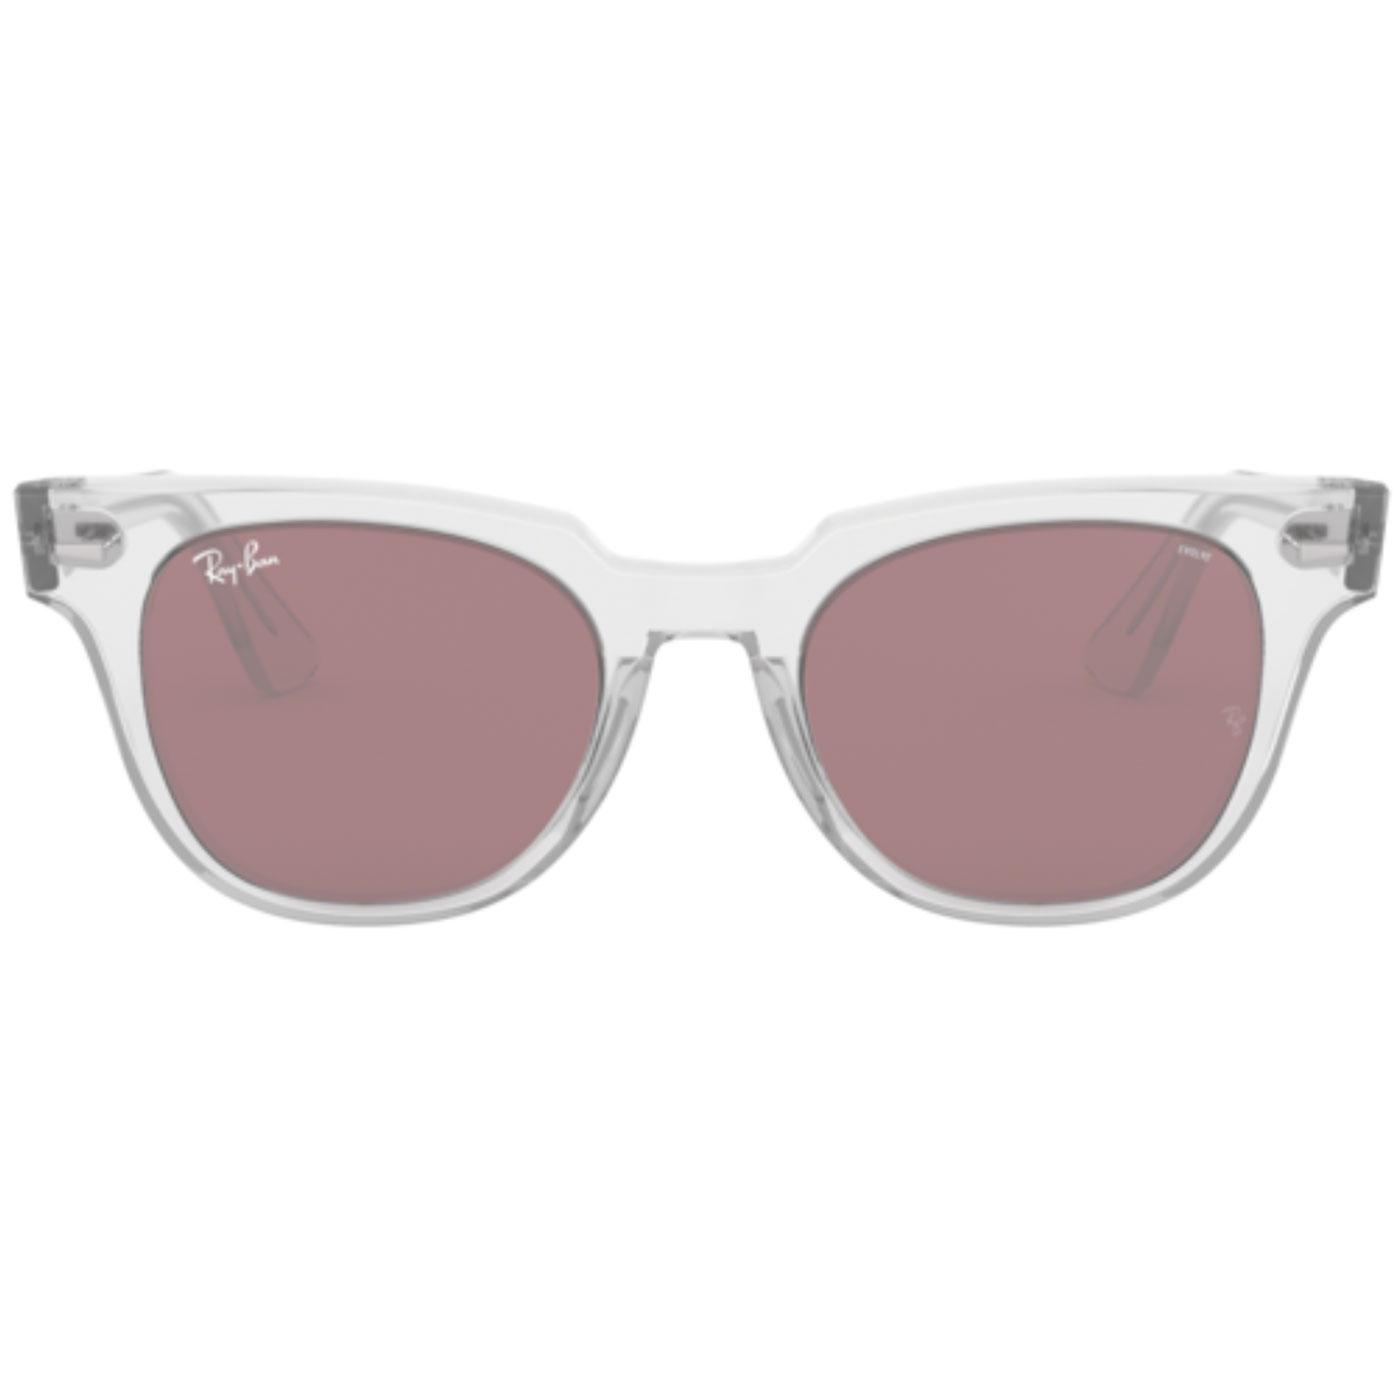 Meteor RAY-BAN Retro Wayfarer Evolve Sunglasses TV